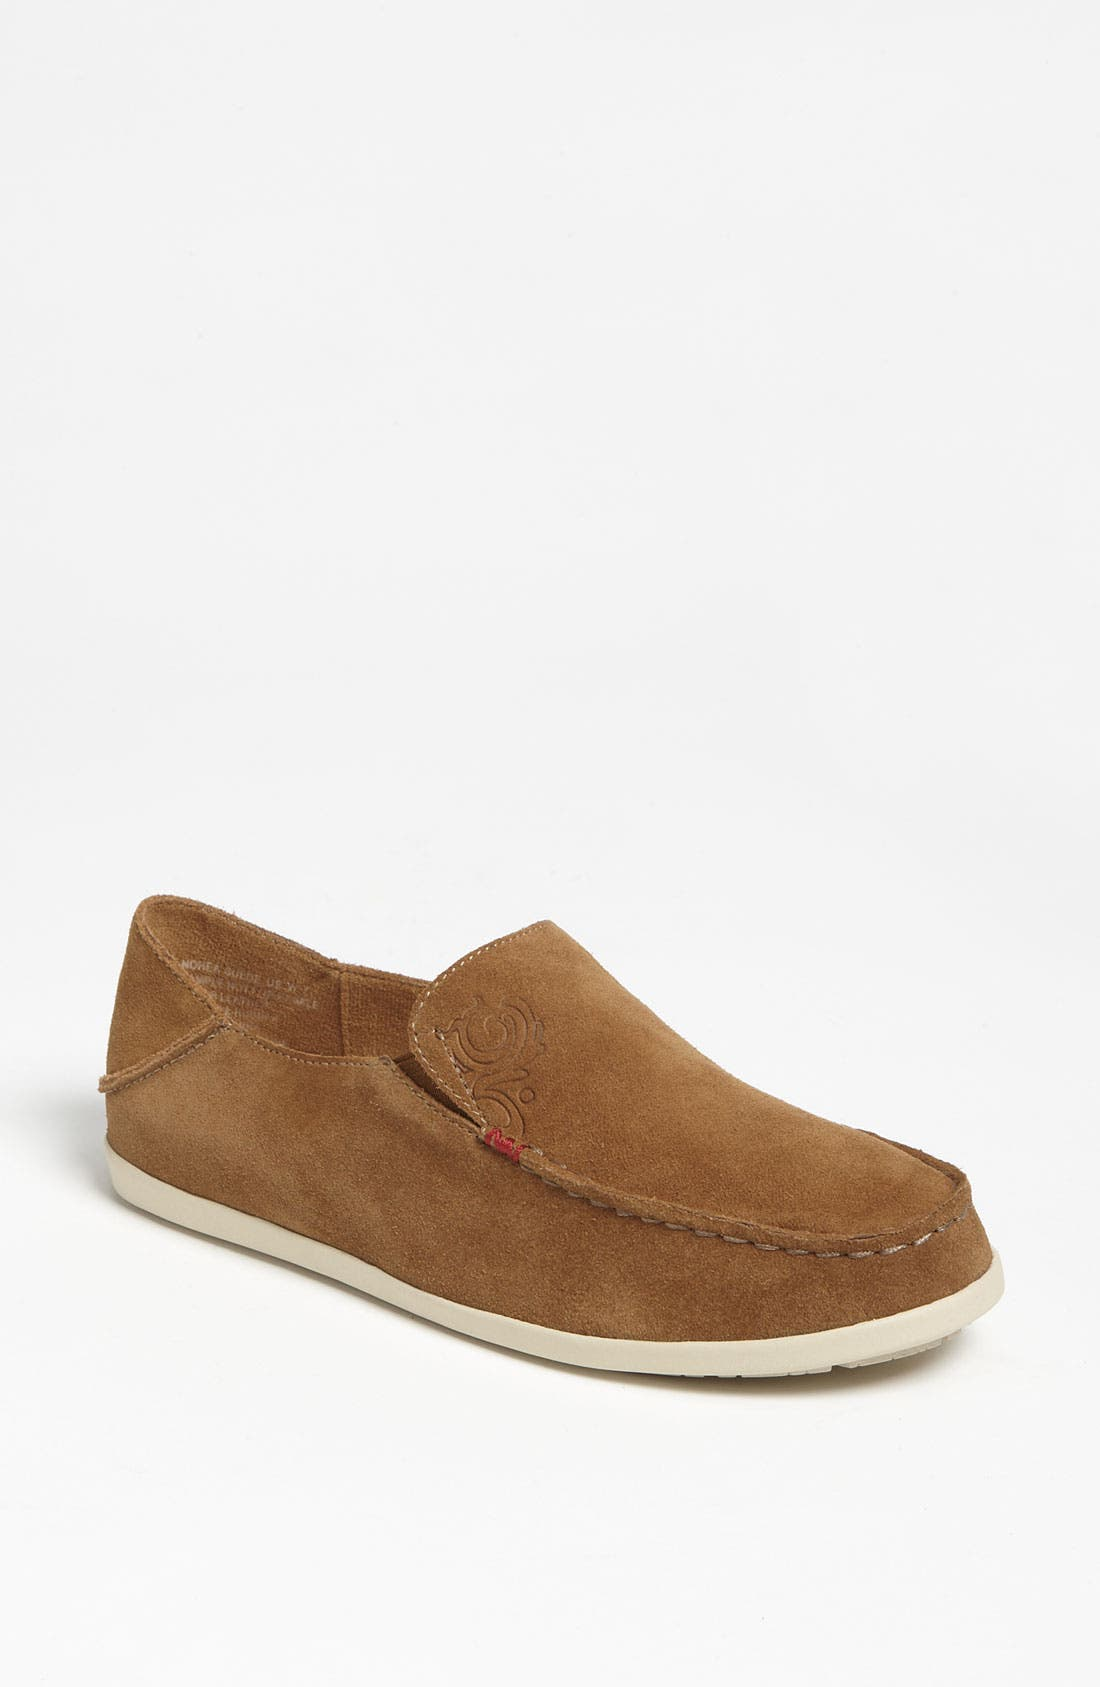 Alternate Image 1 Selected - OluKai 'Nohea' Suede Slip-On (Women)